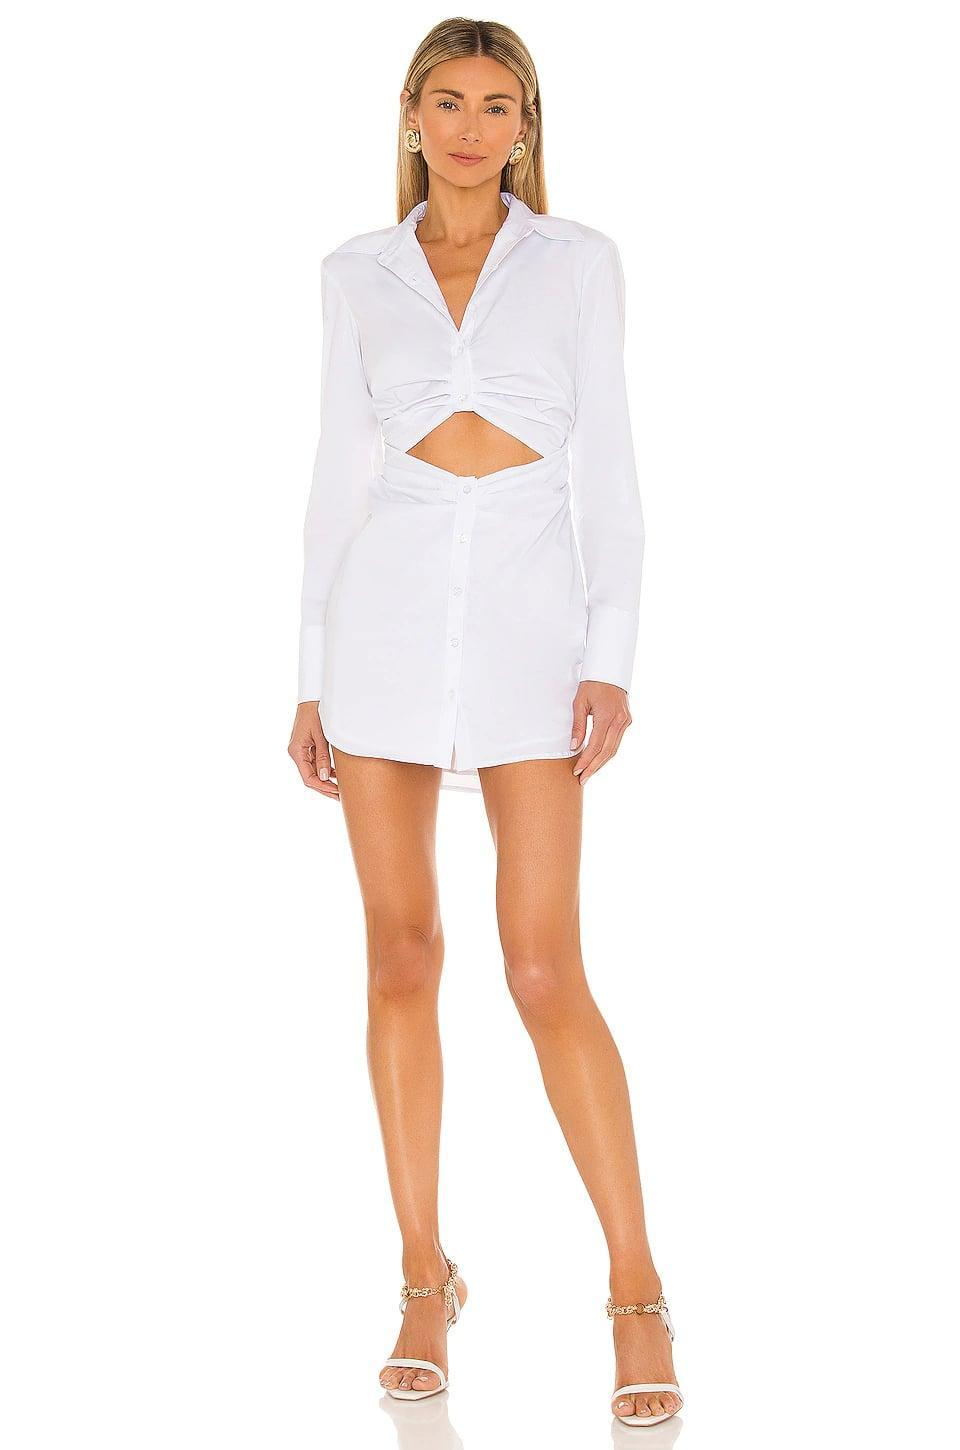 <p>This <span>L'Academie Damani Dress</span> ($198) is a sexy take on a shirt dress. We like it with sandals or sneakers.</p>